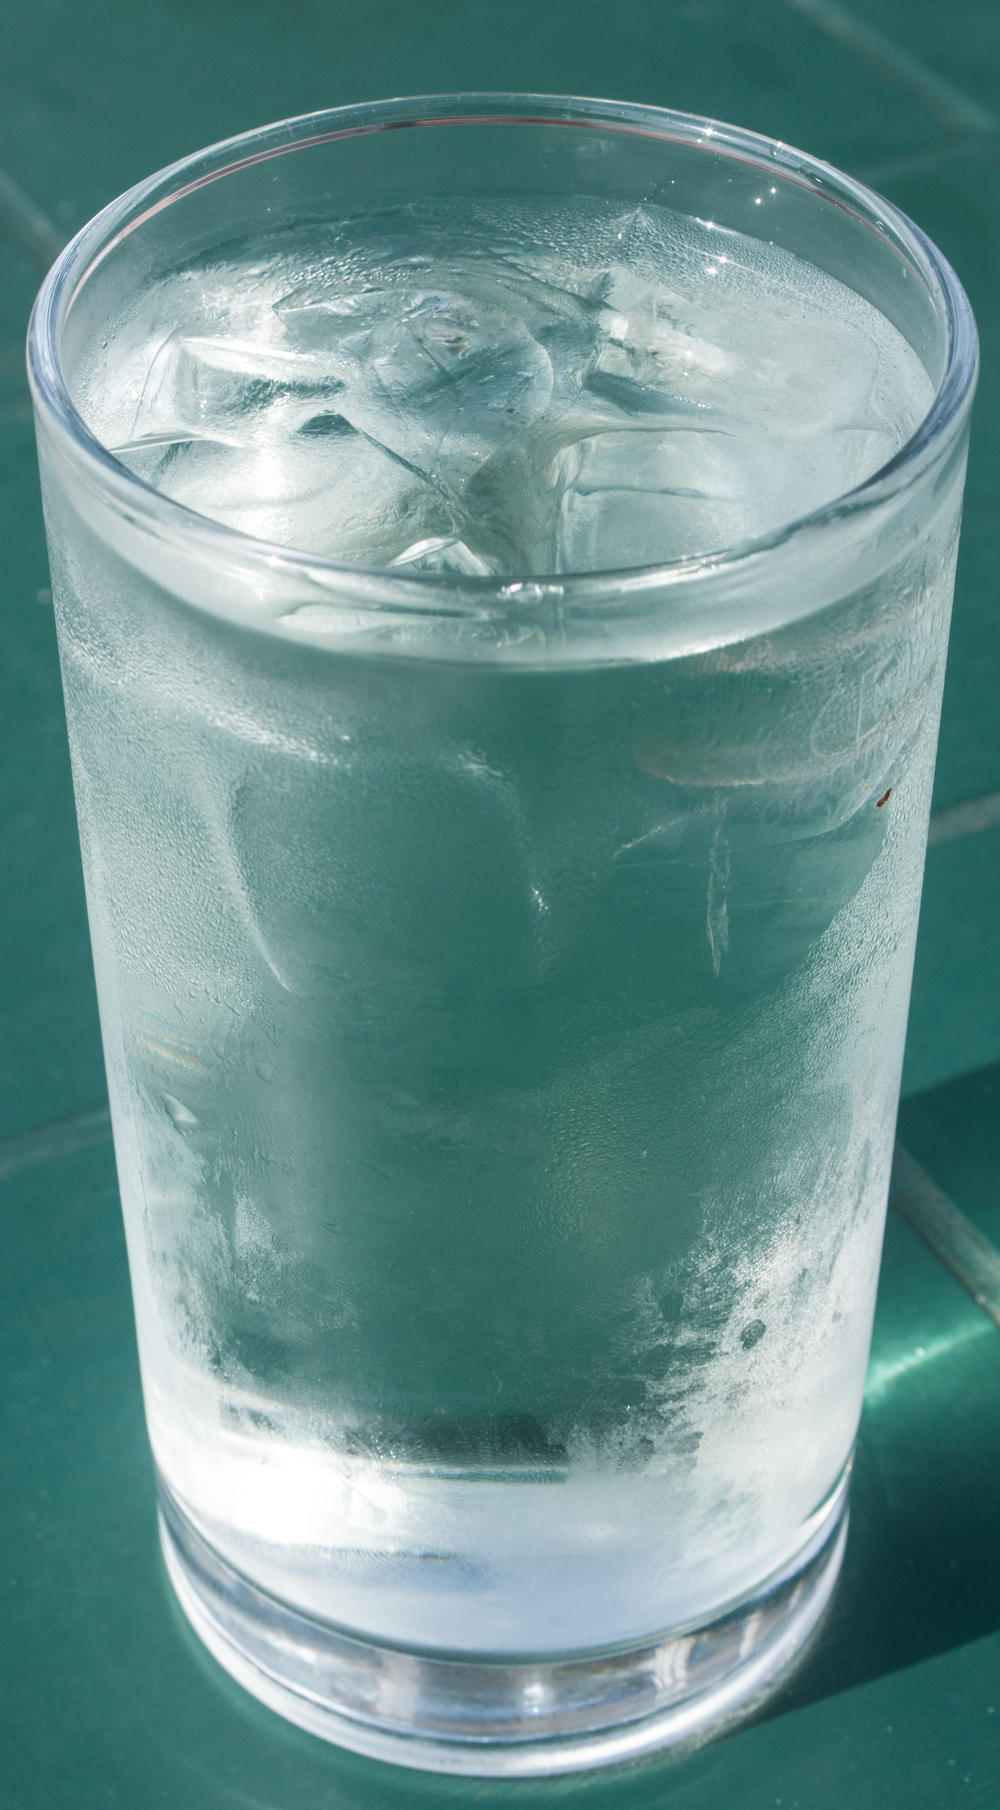 Glass of water.jpg